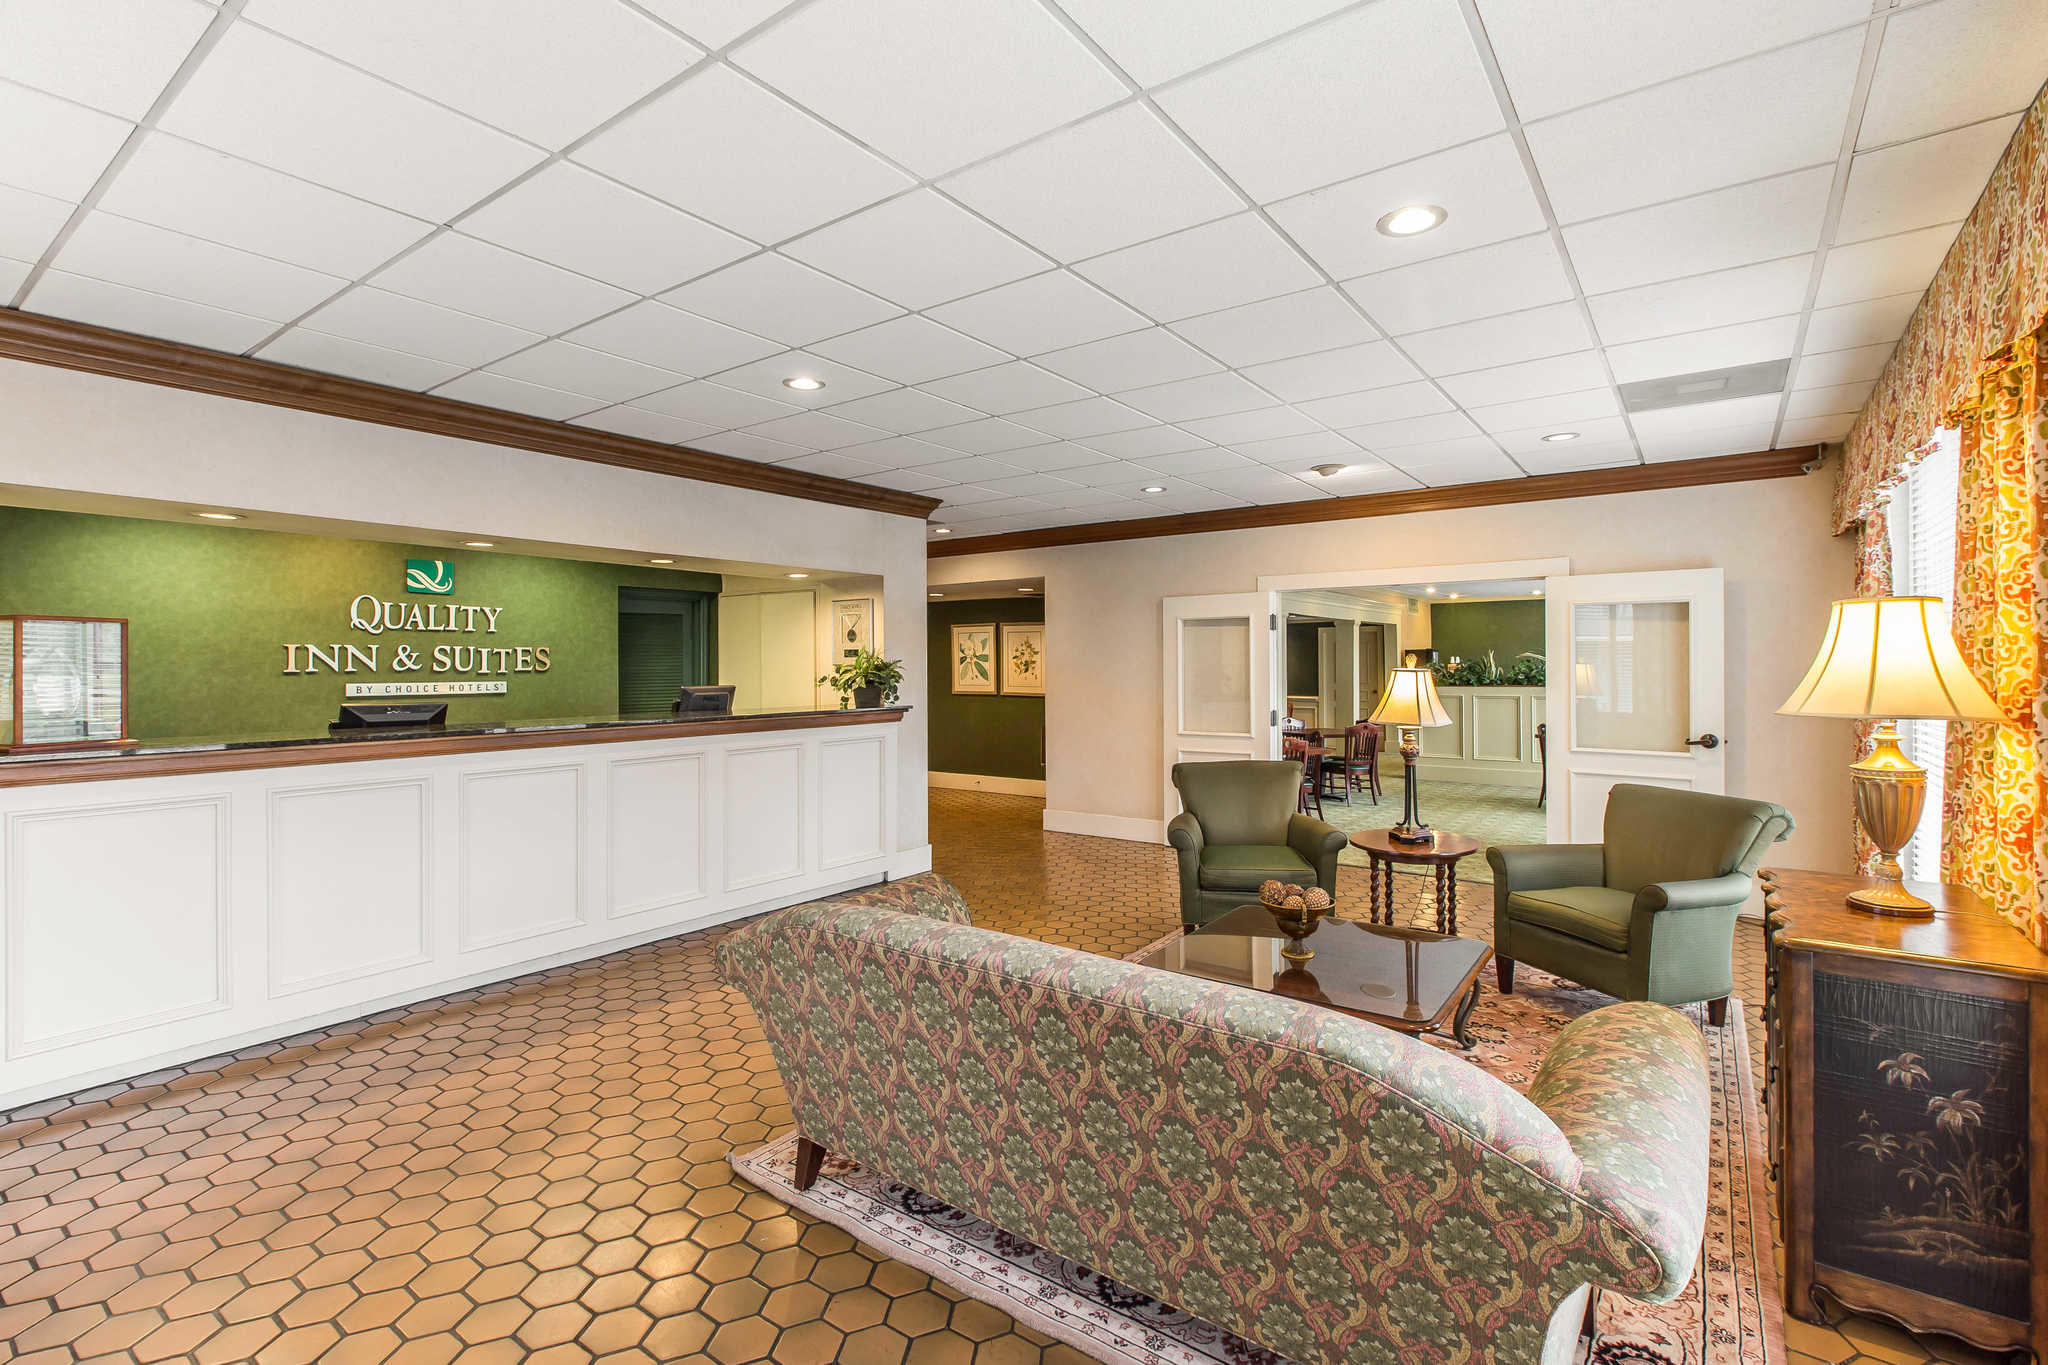 Quality Inn & Suites Conference Center image 4